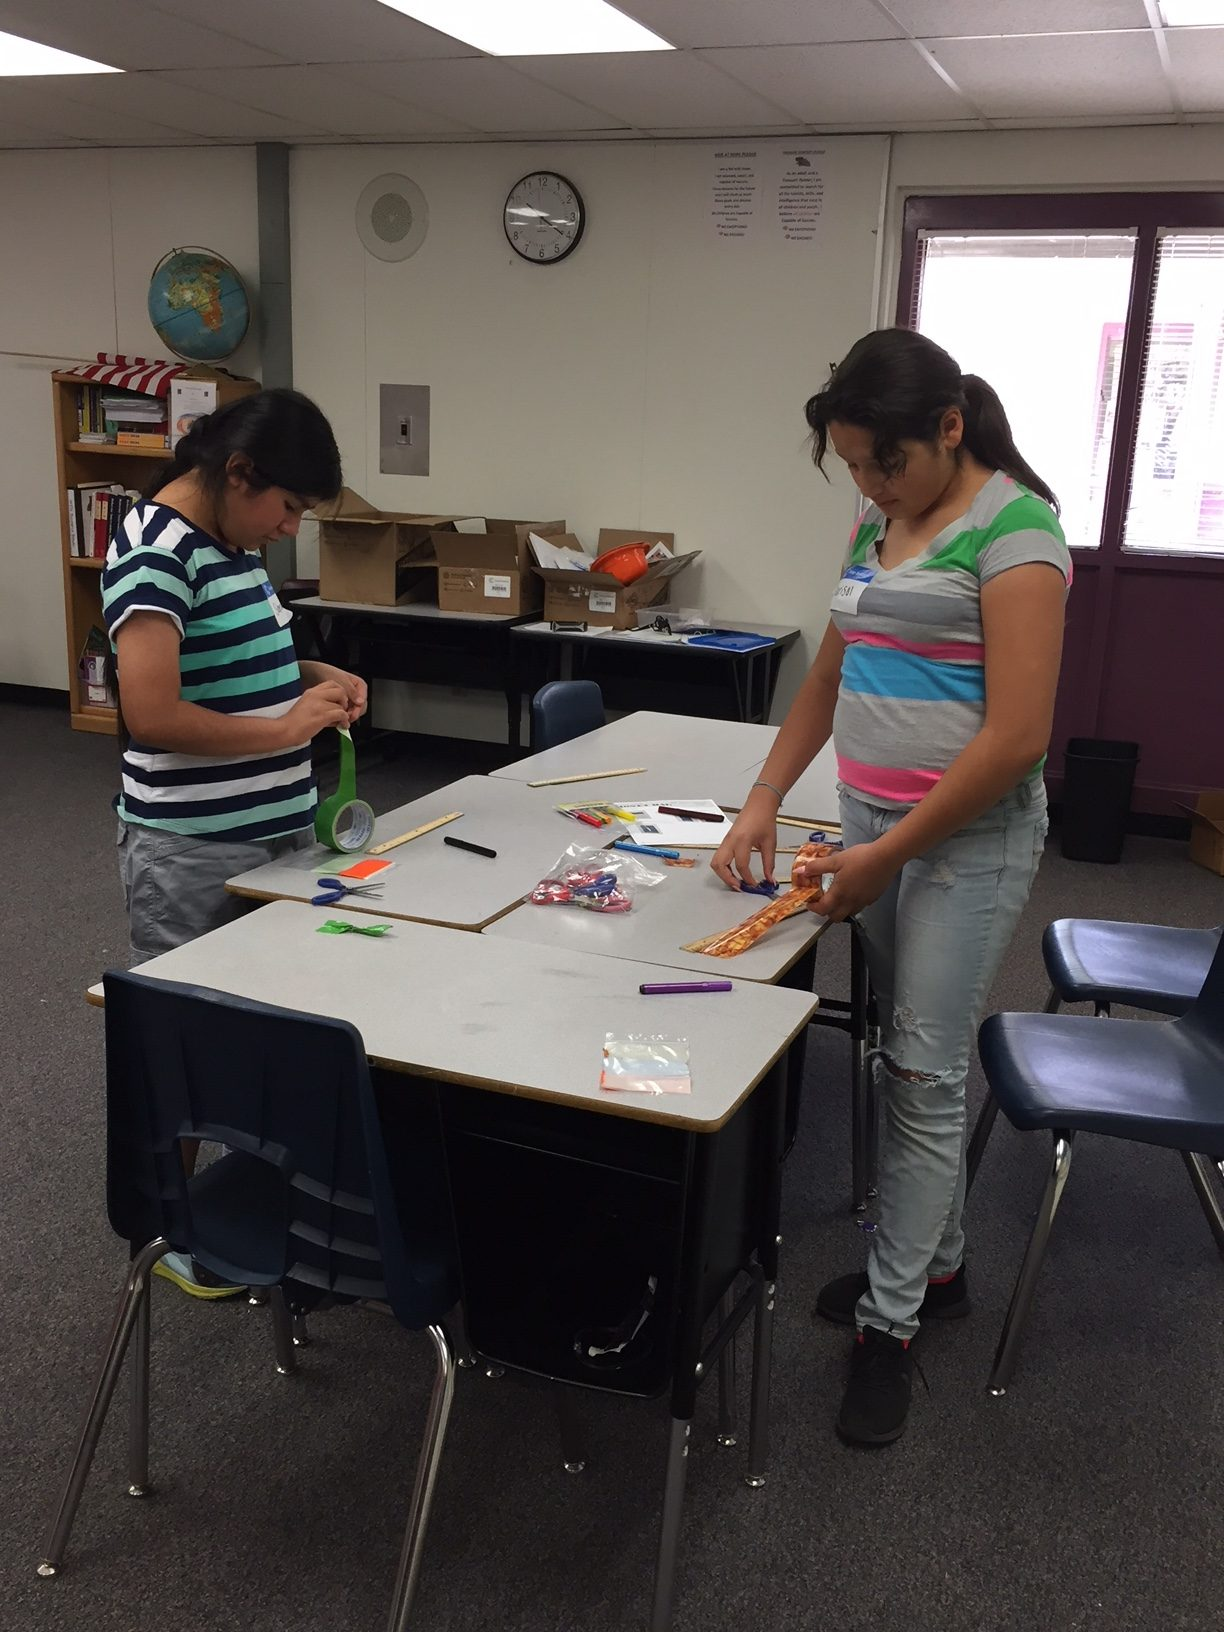 Students From Bethune Elementary In South Phoenix Take Part In Last Summer's Camp Invention. Photo Courtesy National Inventors Hall Of Fame